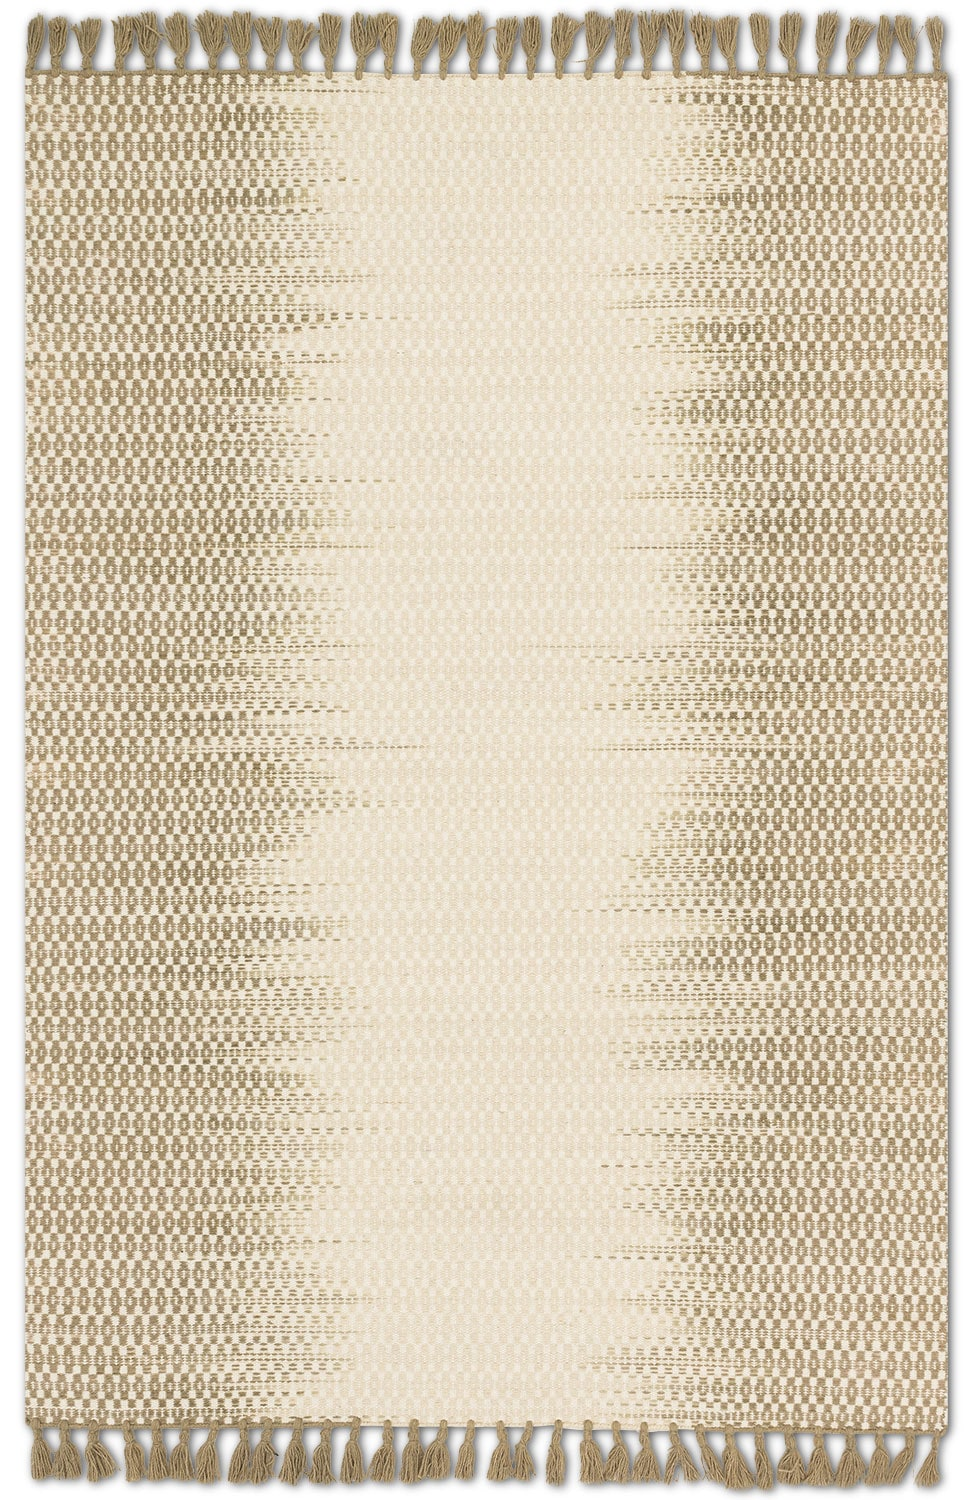 Rugs - Chantilly 9' x 13' Rug - Ivory and Olive